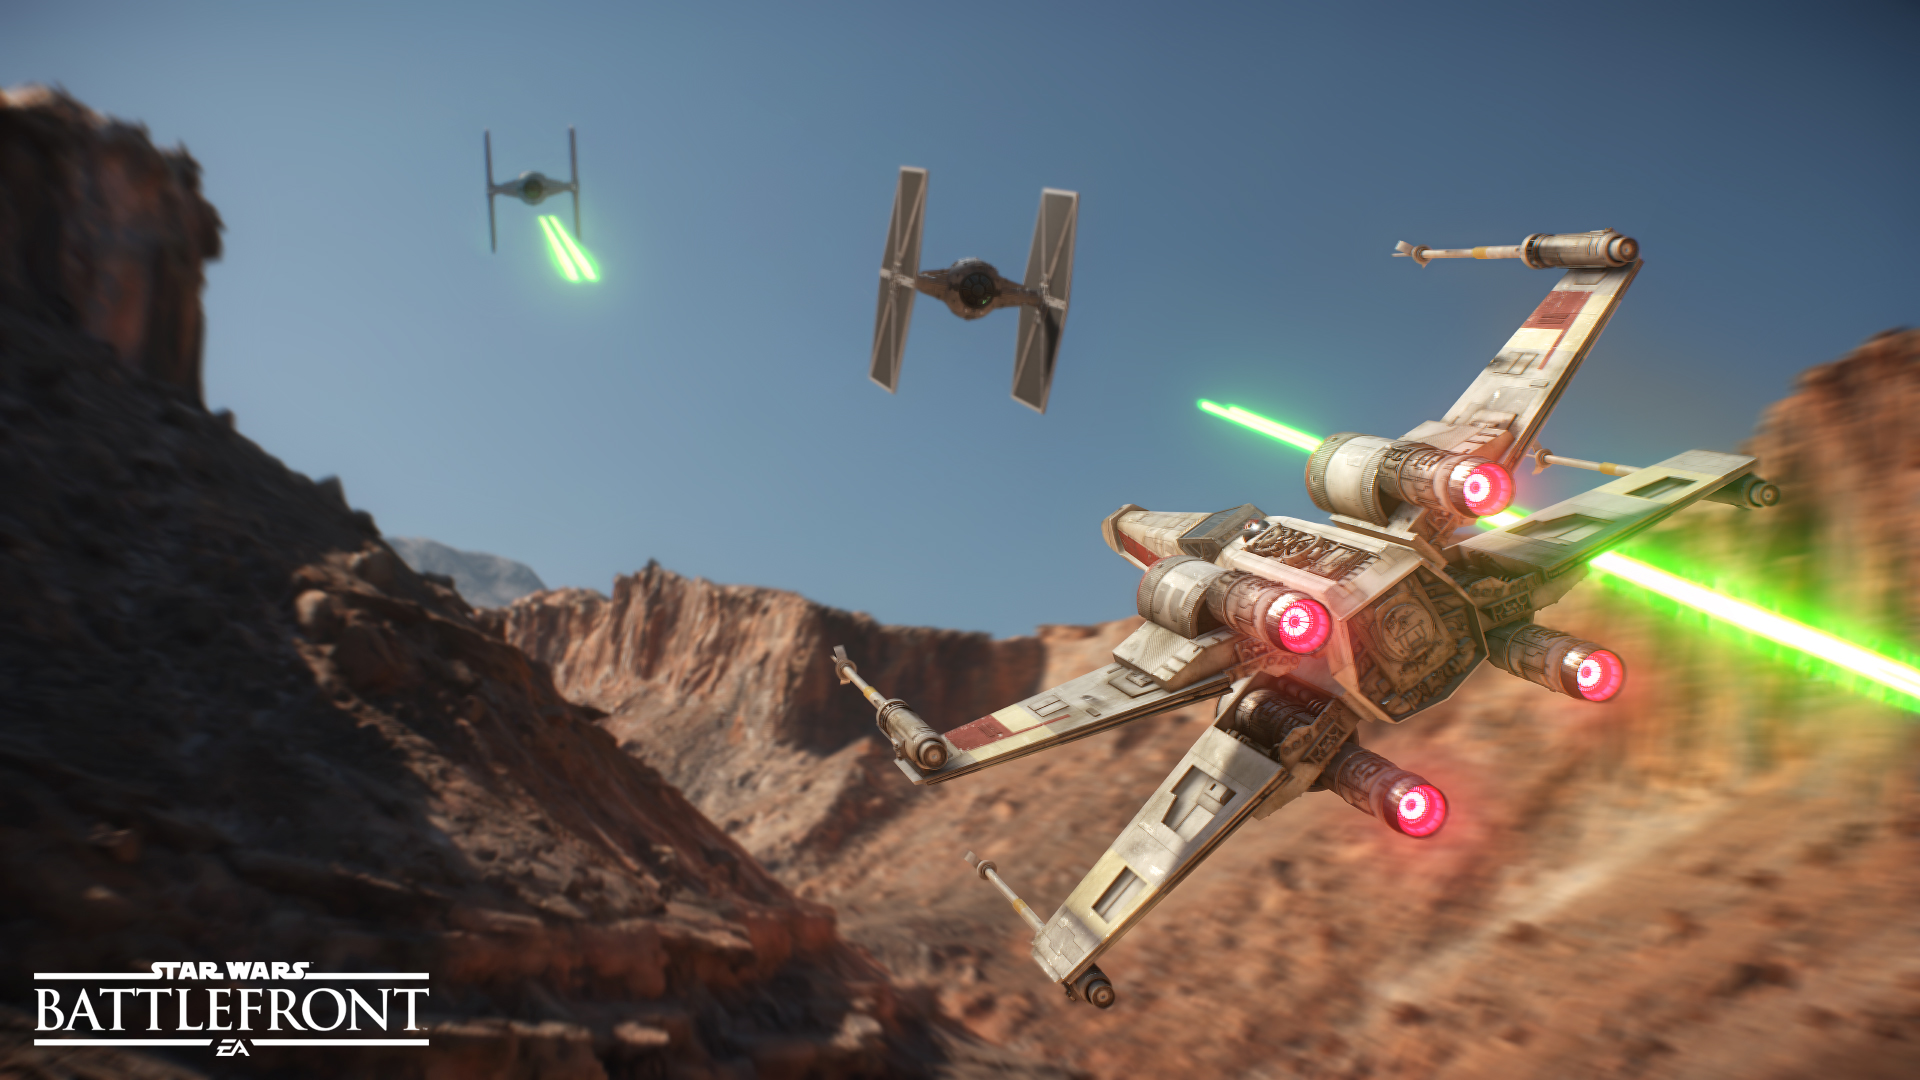 Command AT-ATs, pilot X-wings, TIE fighters, the Millennium Falcon and more of your favorite vehicles in Star Wars™ Battlefront™.